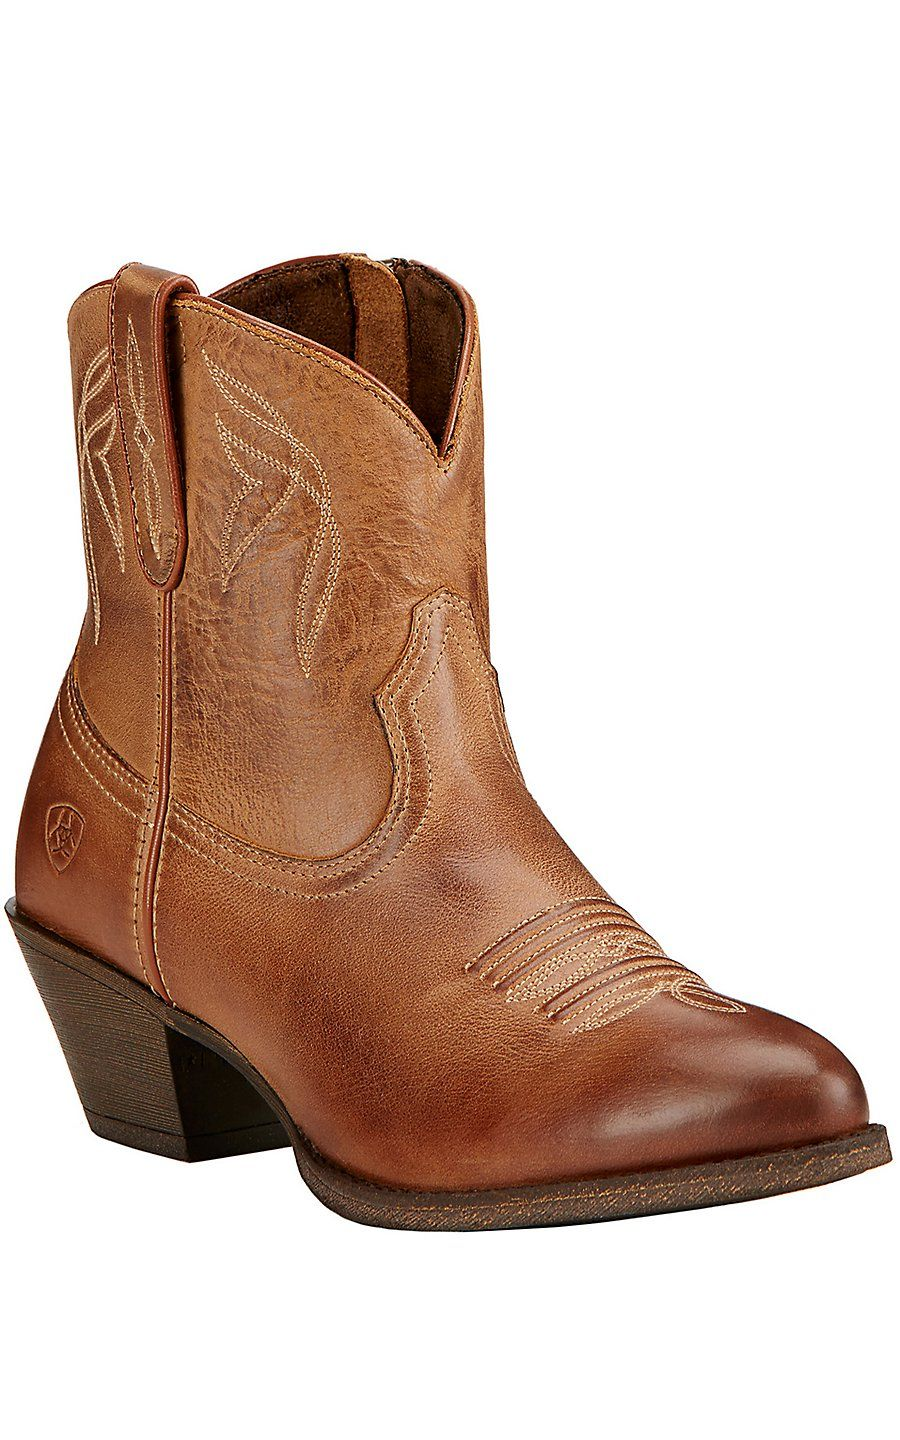 Ariat Darlin Women's Burnt Sugar Almond Toe 7in Western Boots | Cavender's